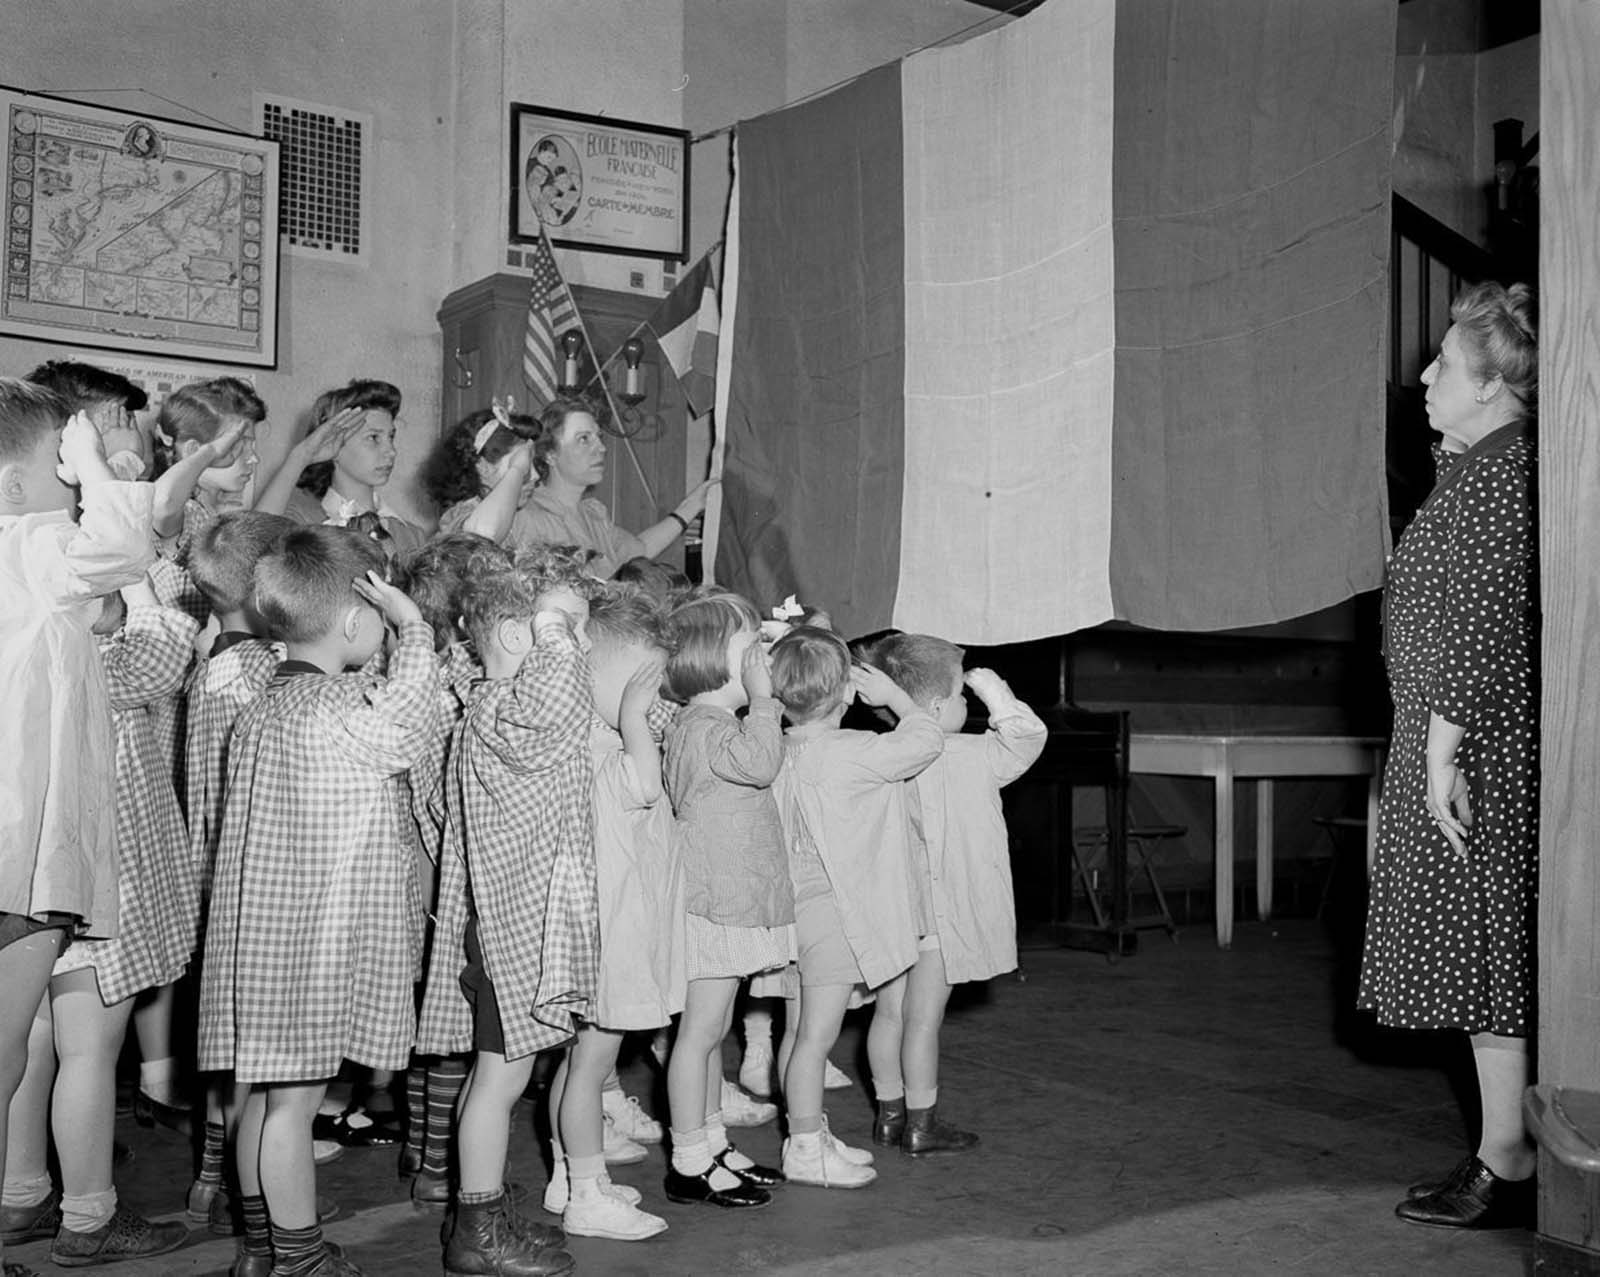 Children salute the French flag at a French school in Manhattan.